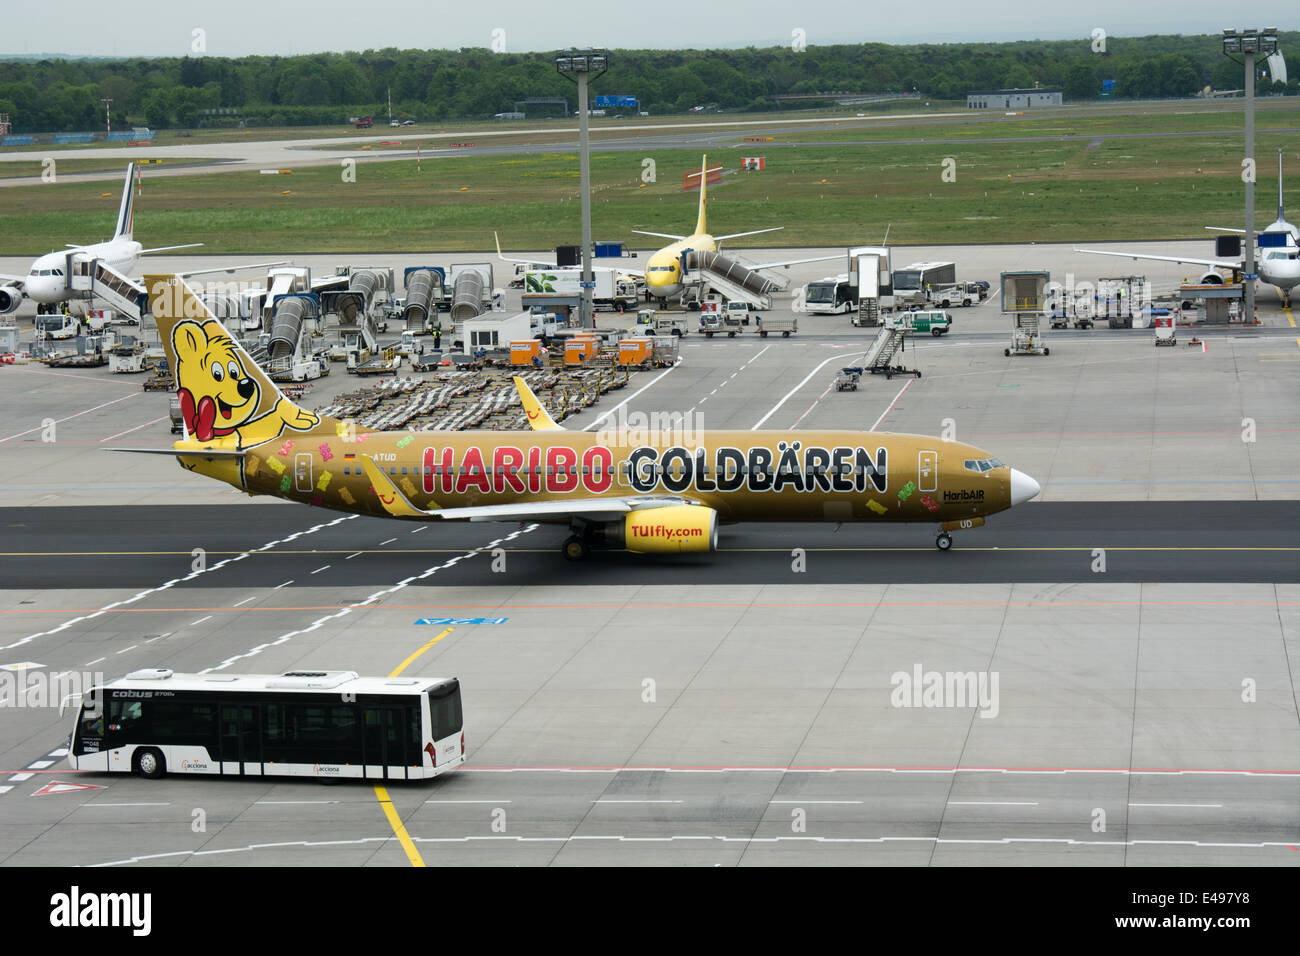 A specially painted Boeing 737-8K5 of TUI Fly advertises Haribo Goldbären golden bear. Seen at Frankfurt airport. - Stock Image